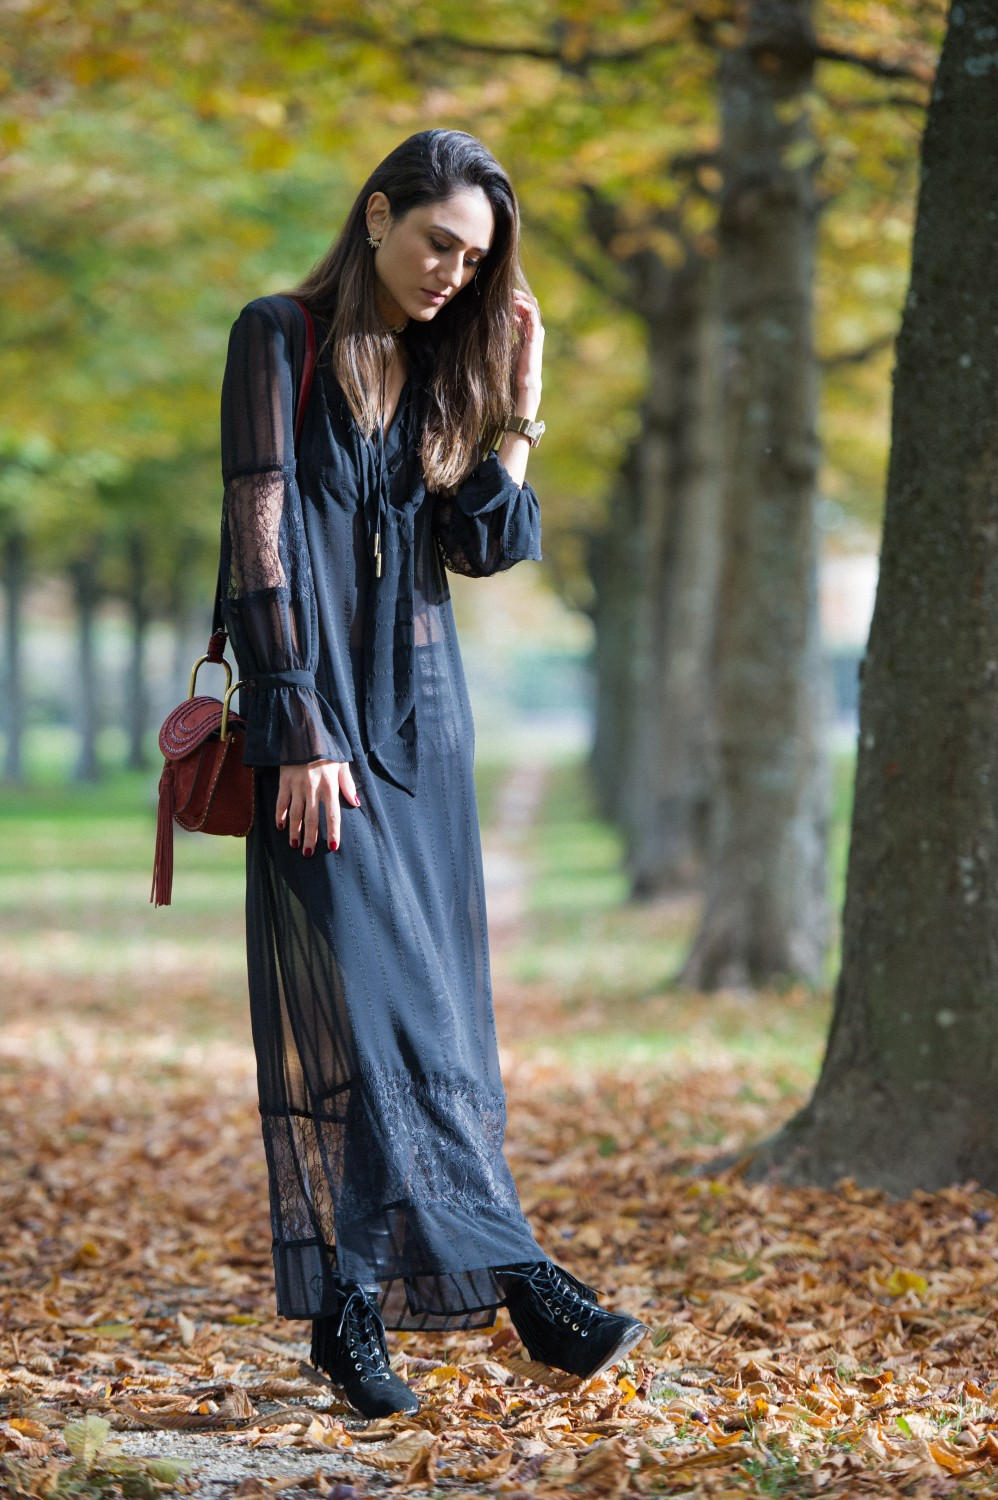 Soraya Bakhtiar looks gorgeous in this boho style lace maxi dress. Dress: H&M, Trousers: Balenciaga, Necklace: Topshop.